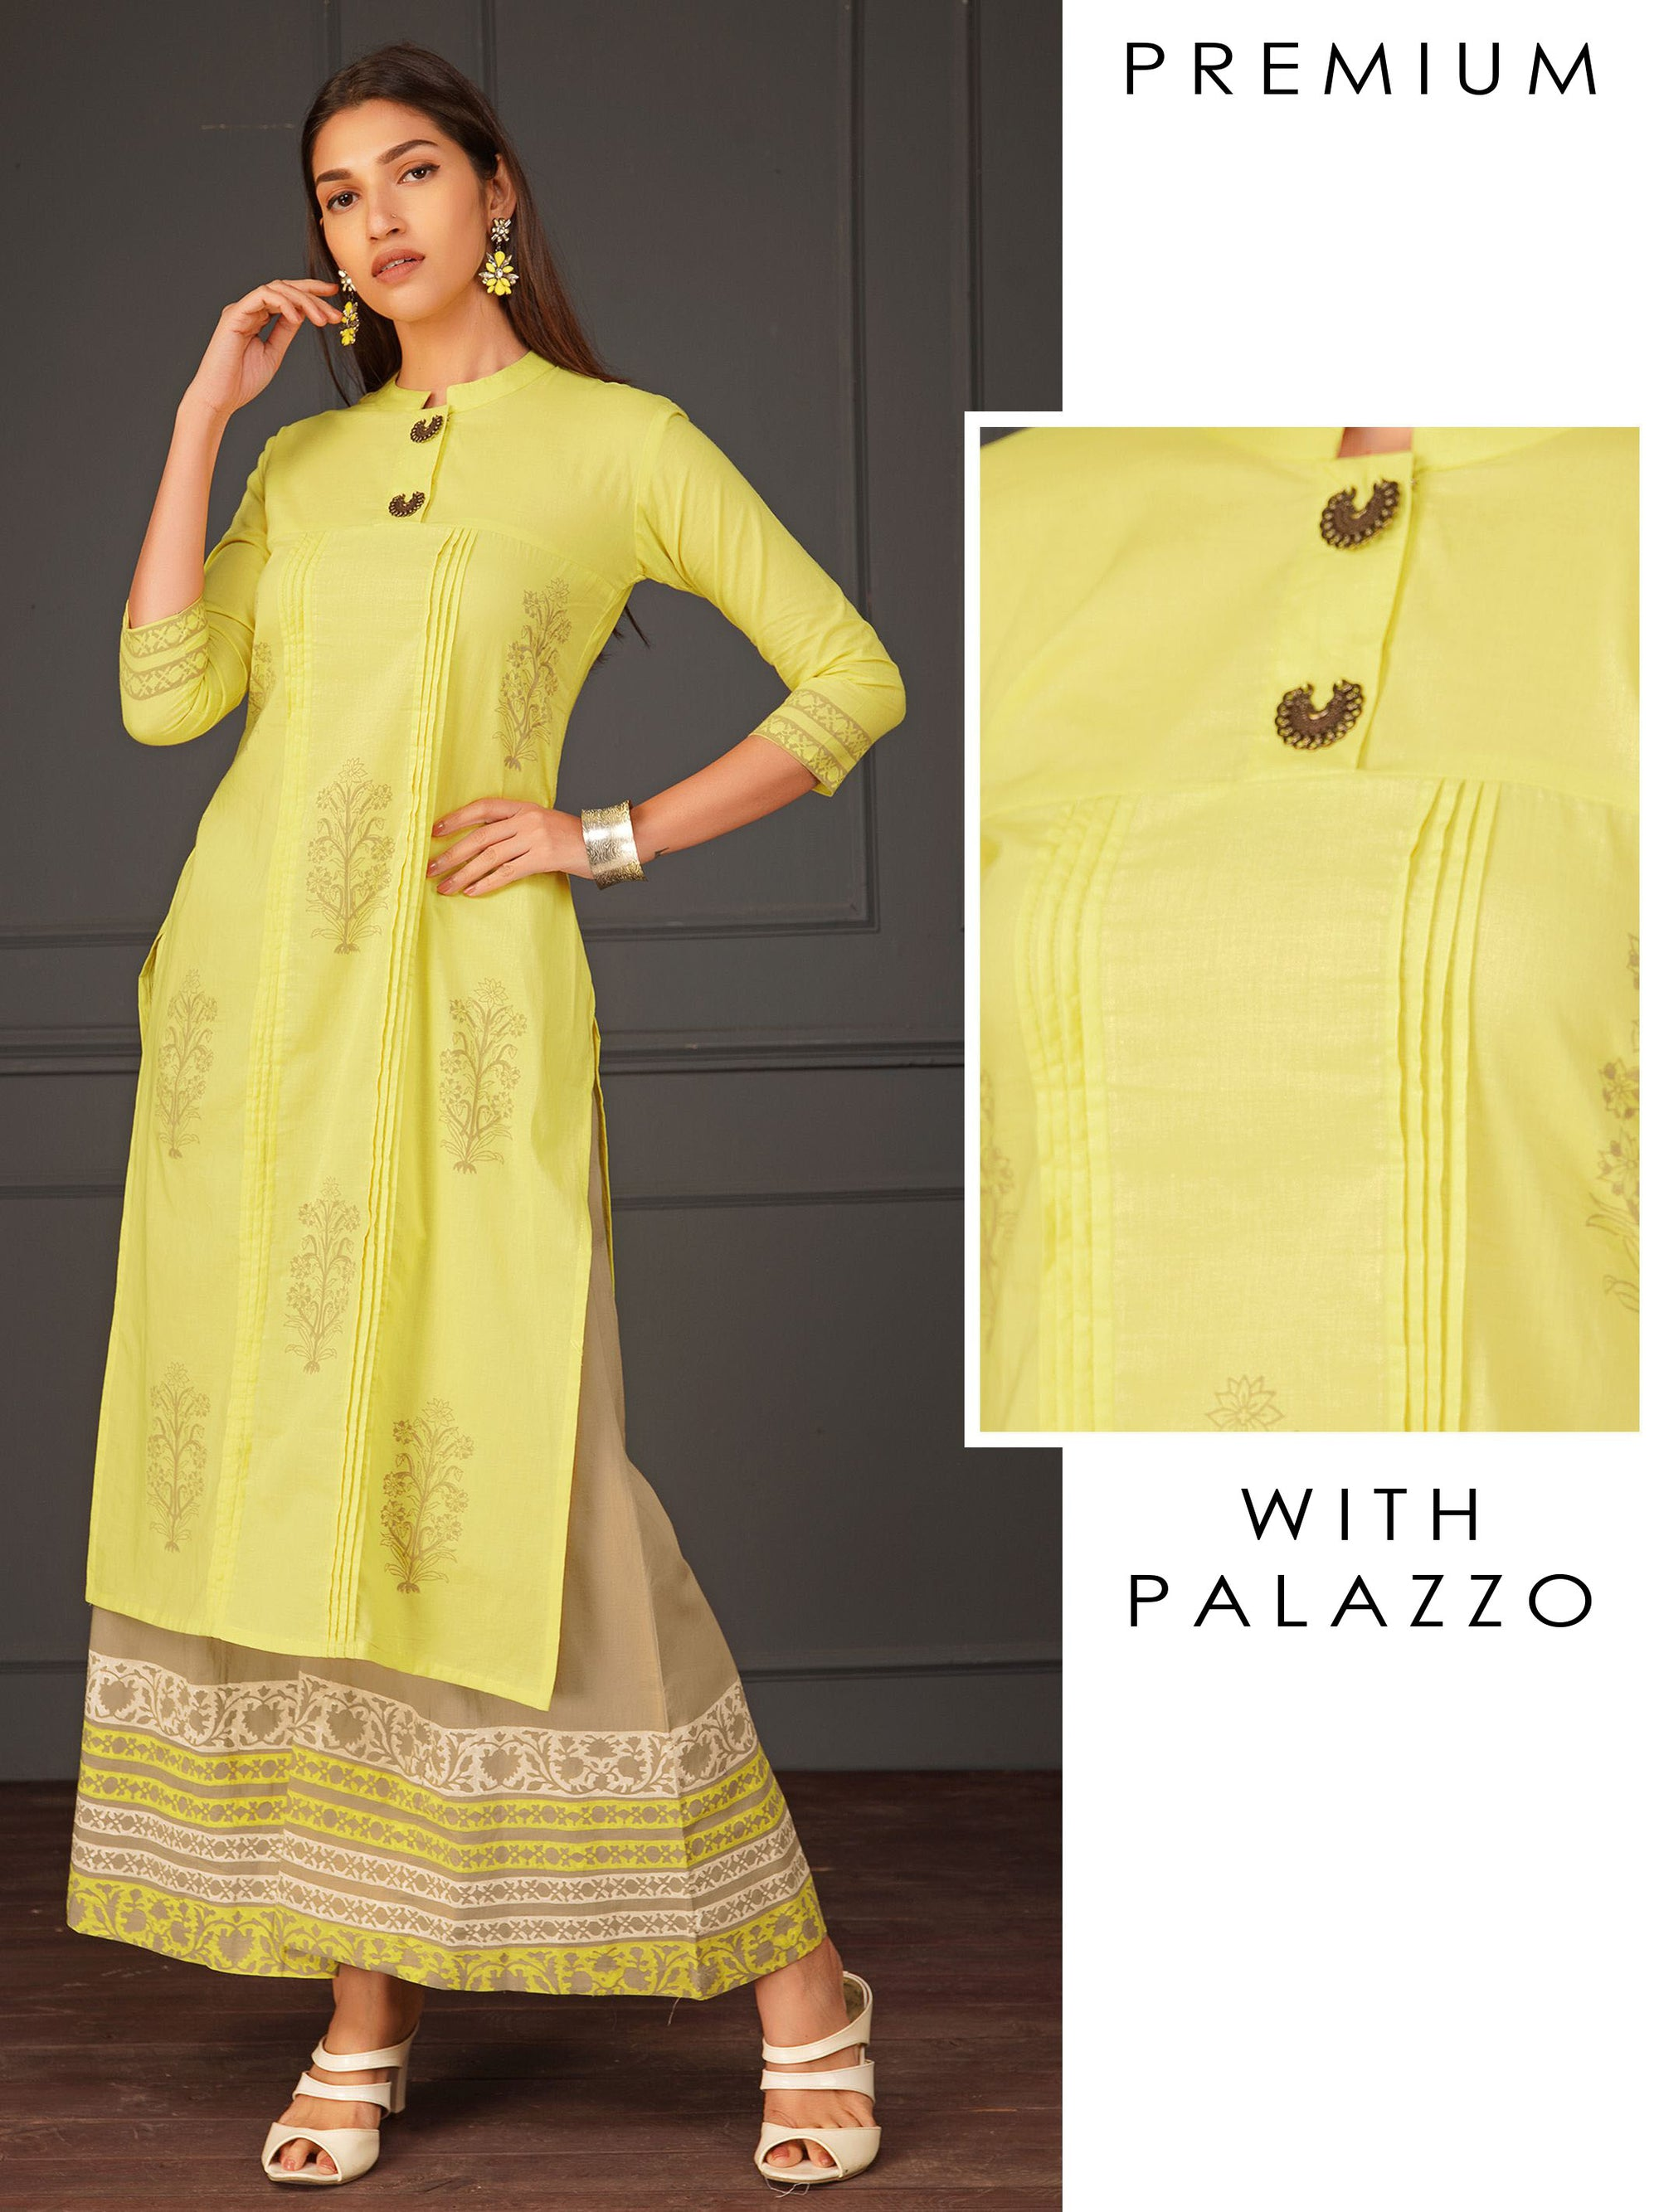 Printed Floral Motifs With Pintuck Design On Kurta and Palazzo Set